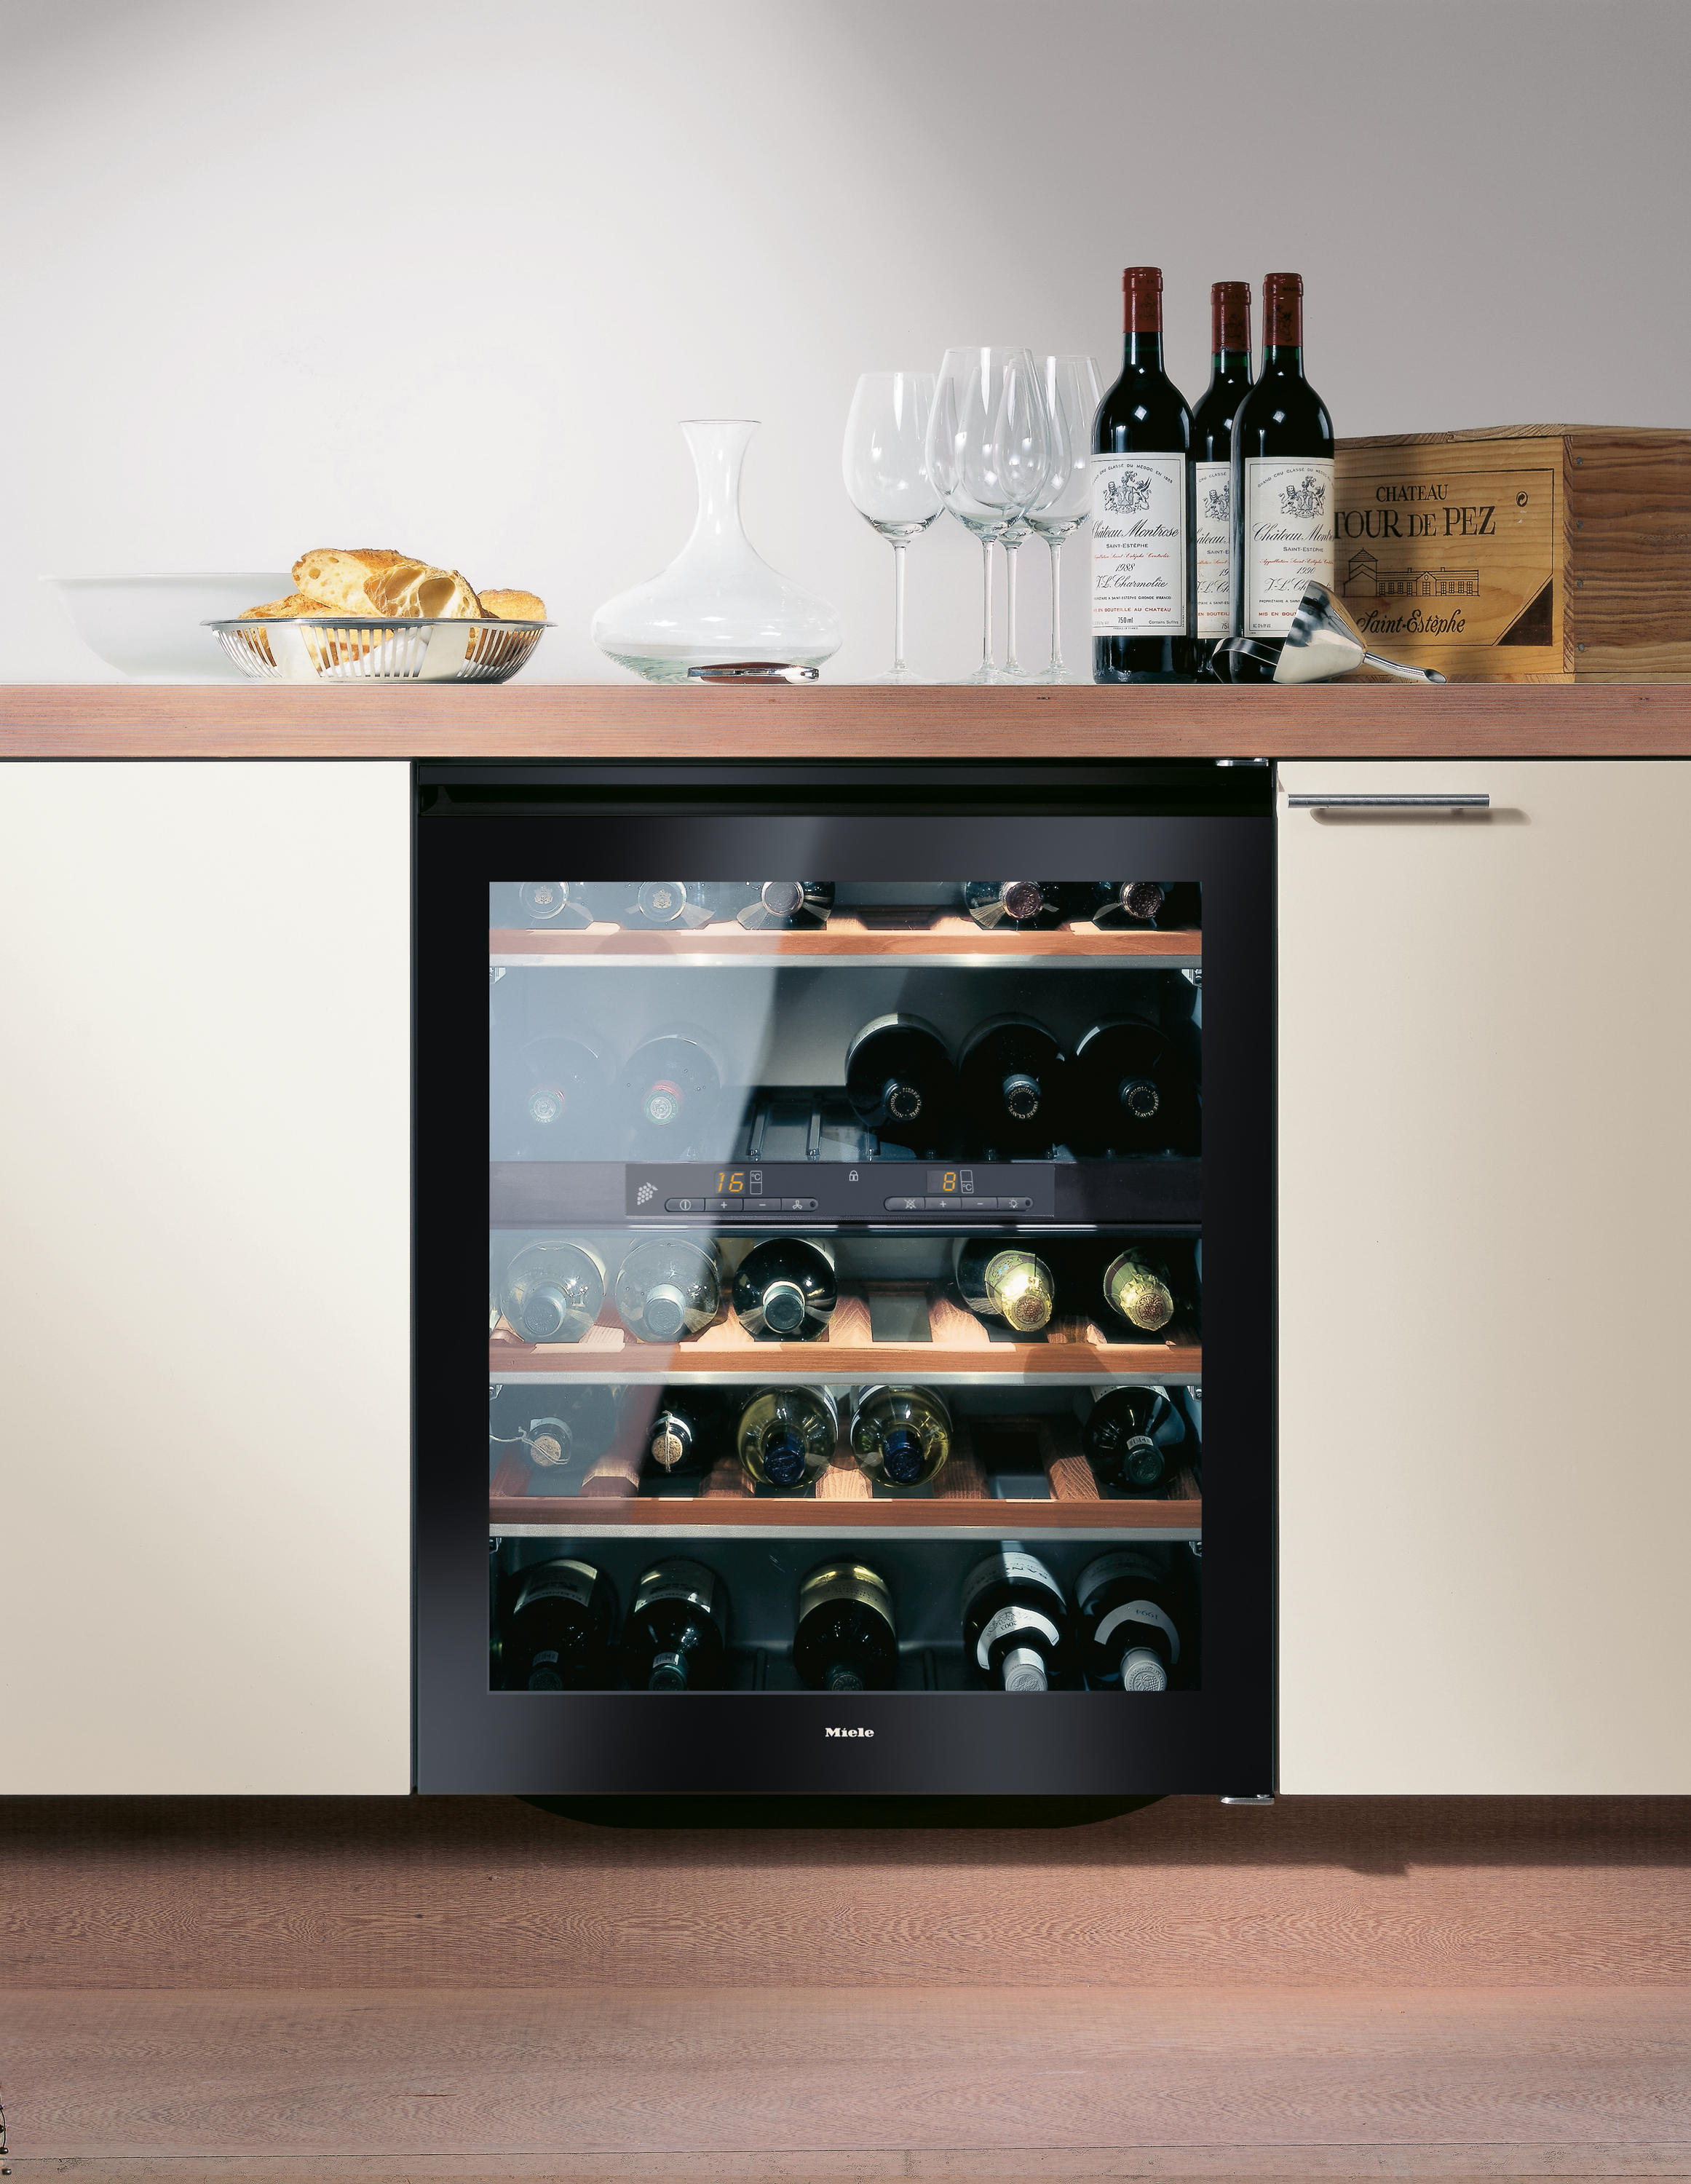 kwt 4154 ug 1 wine cooler refrigerators from miele architonic. Black Bedroom Furniture Sets. Home Design Ideas